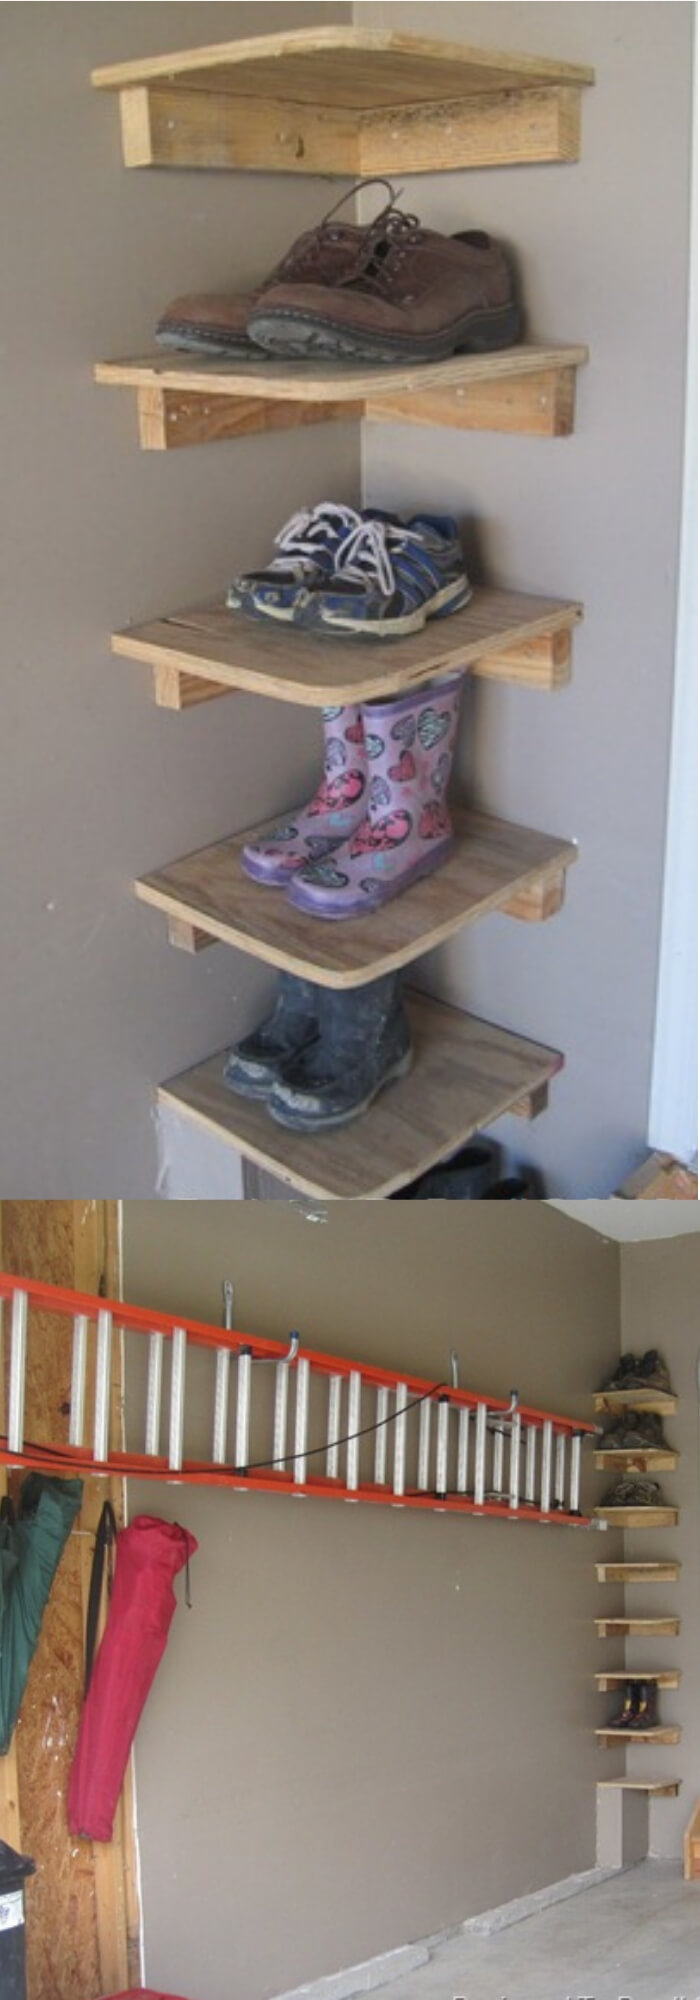 Shoe Shelves in garage | Smart Shoe Storage Ideas & Designs For Any Zoom Size